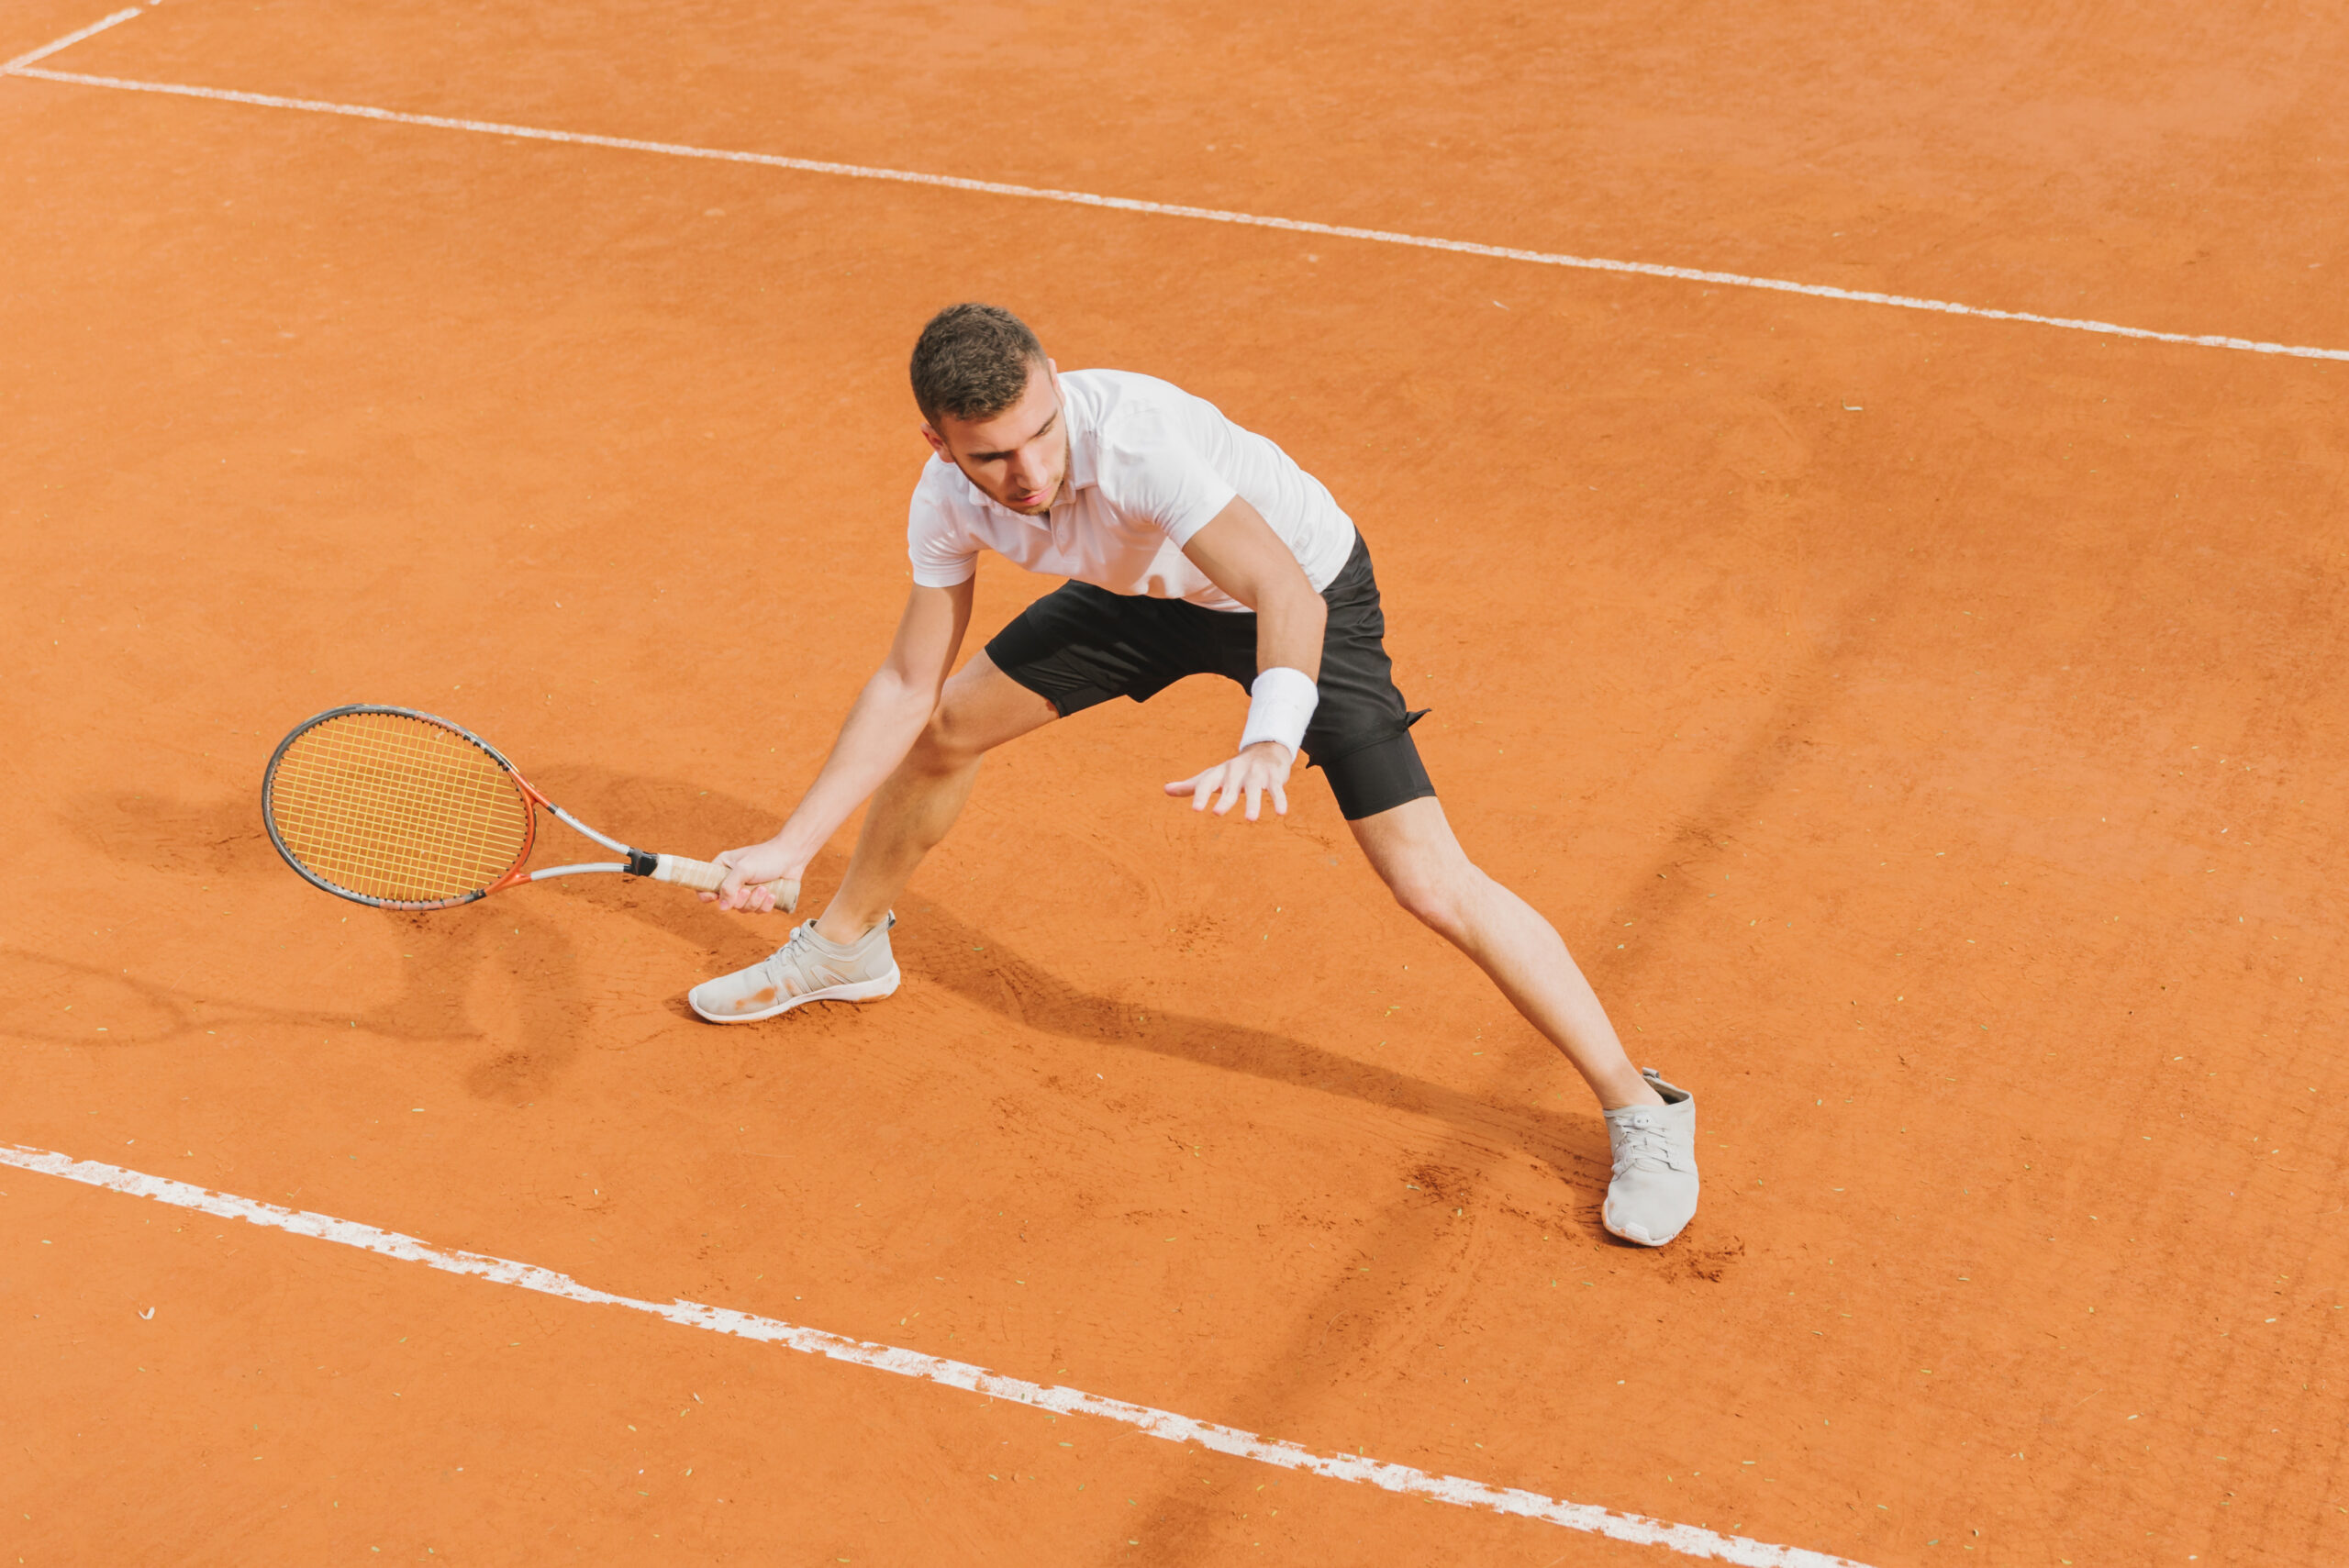 athletic-young-boy-playing-tennis